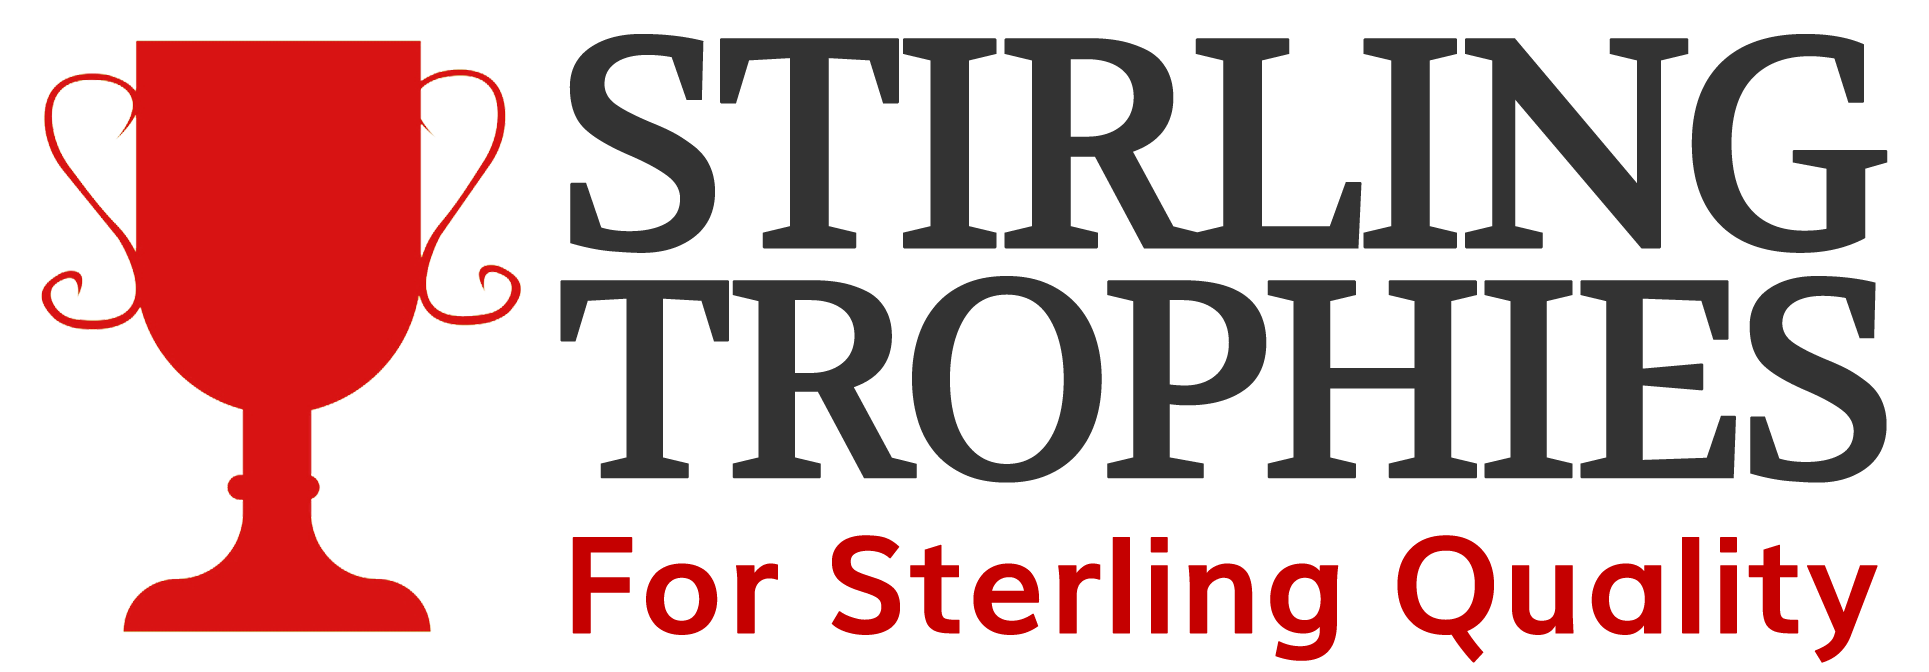 Sterling Trophies Logo